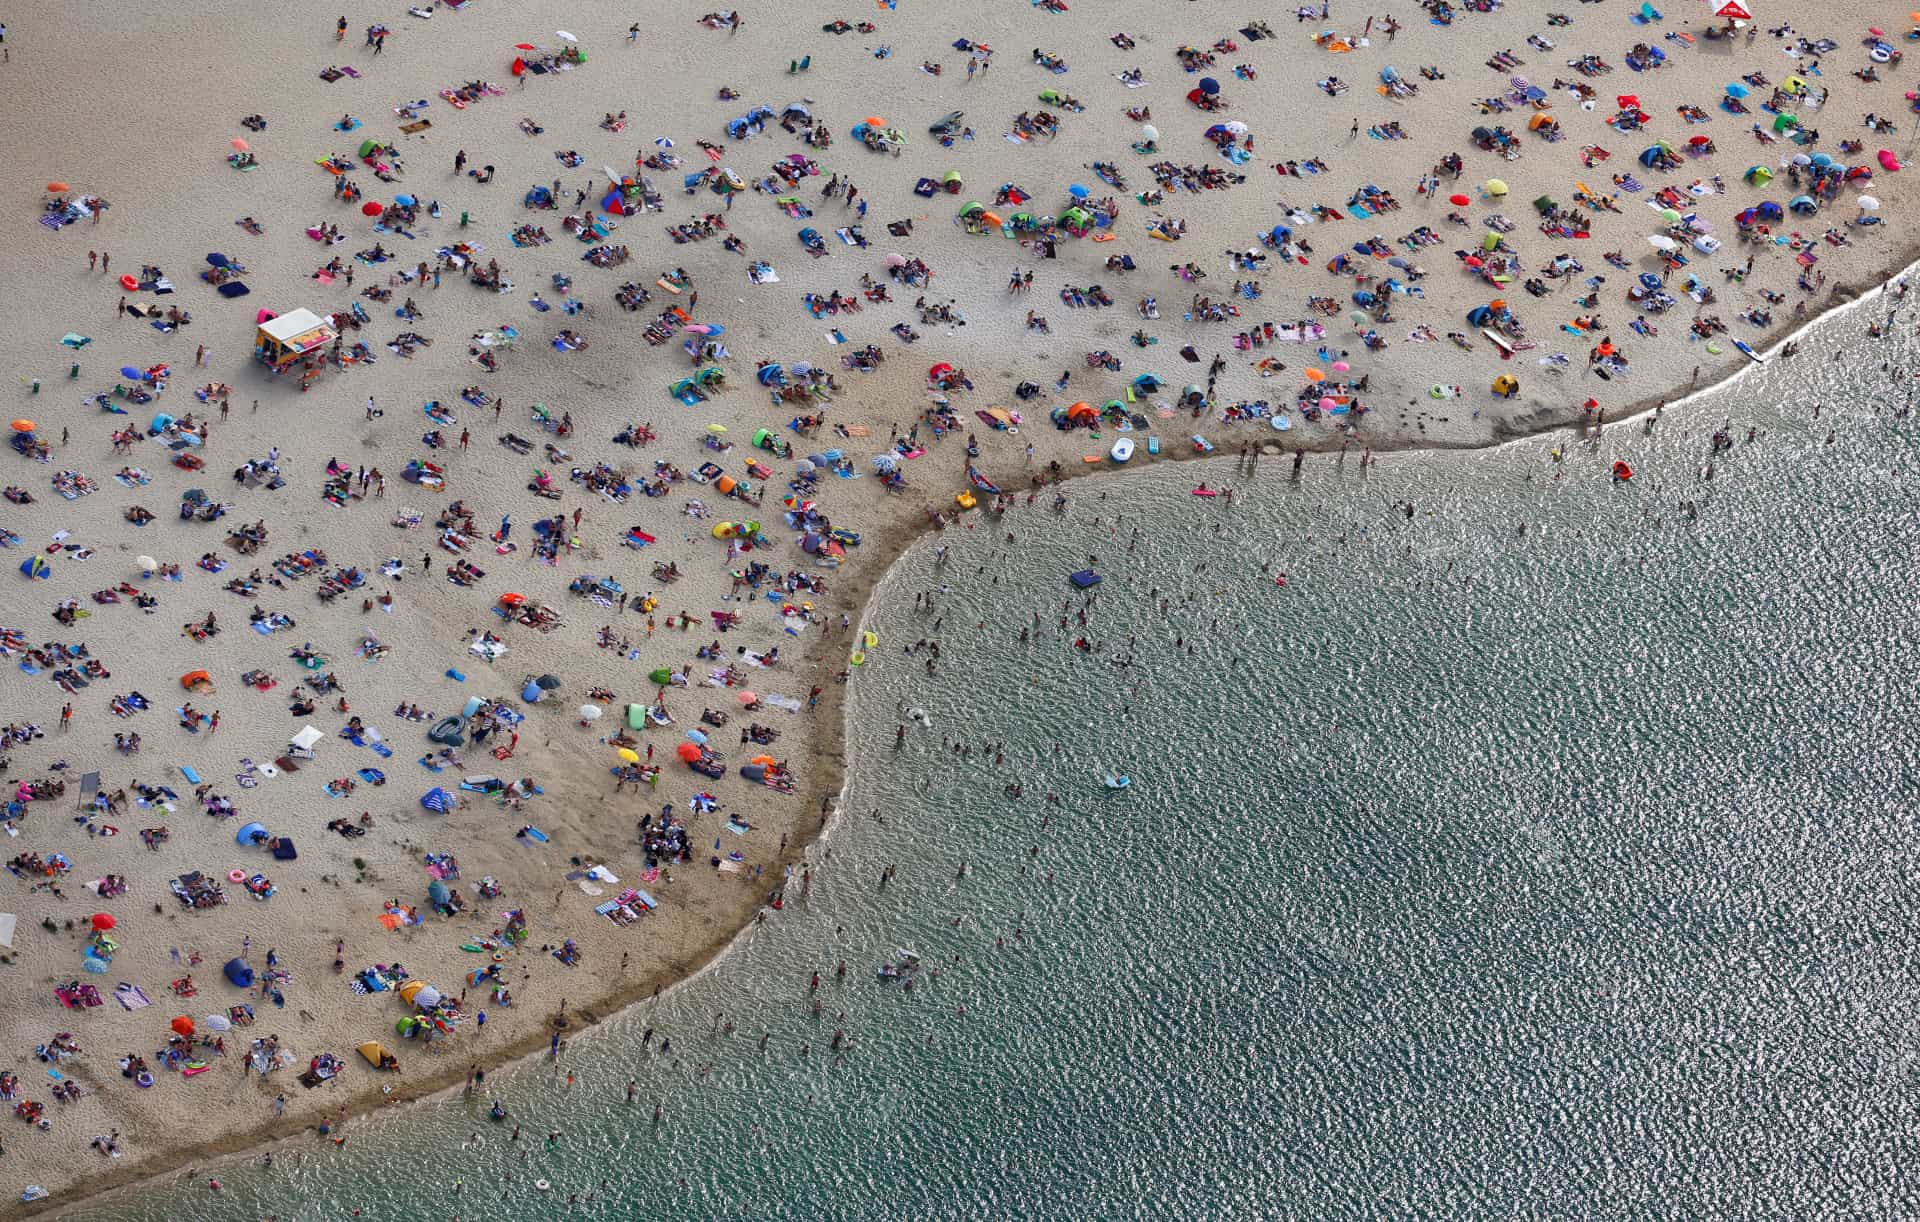 Astounding aerial images of Earth in 2018